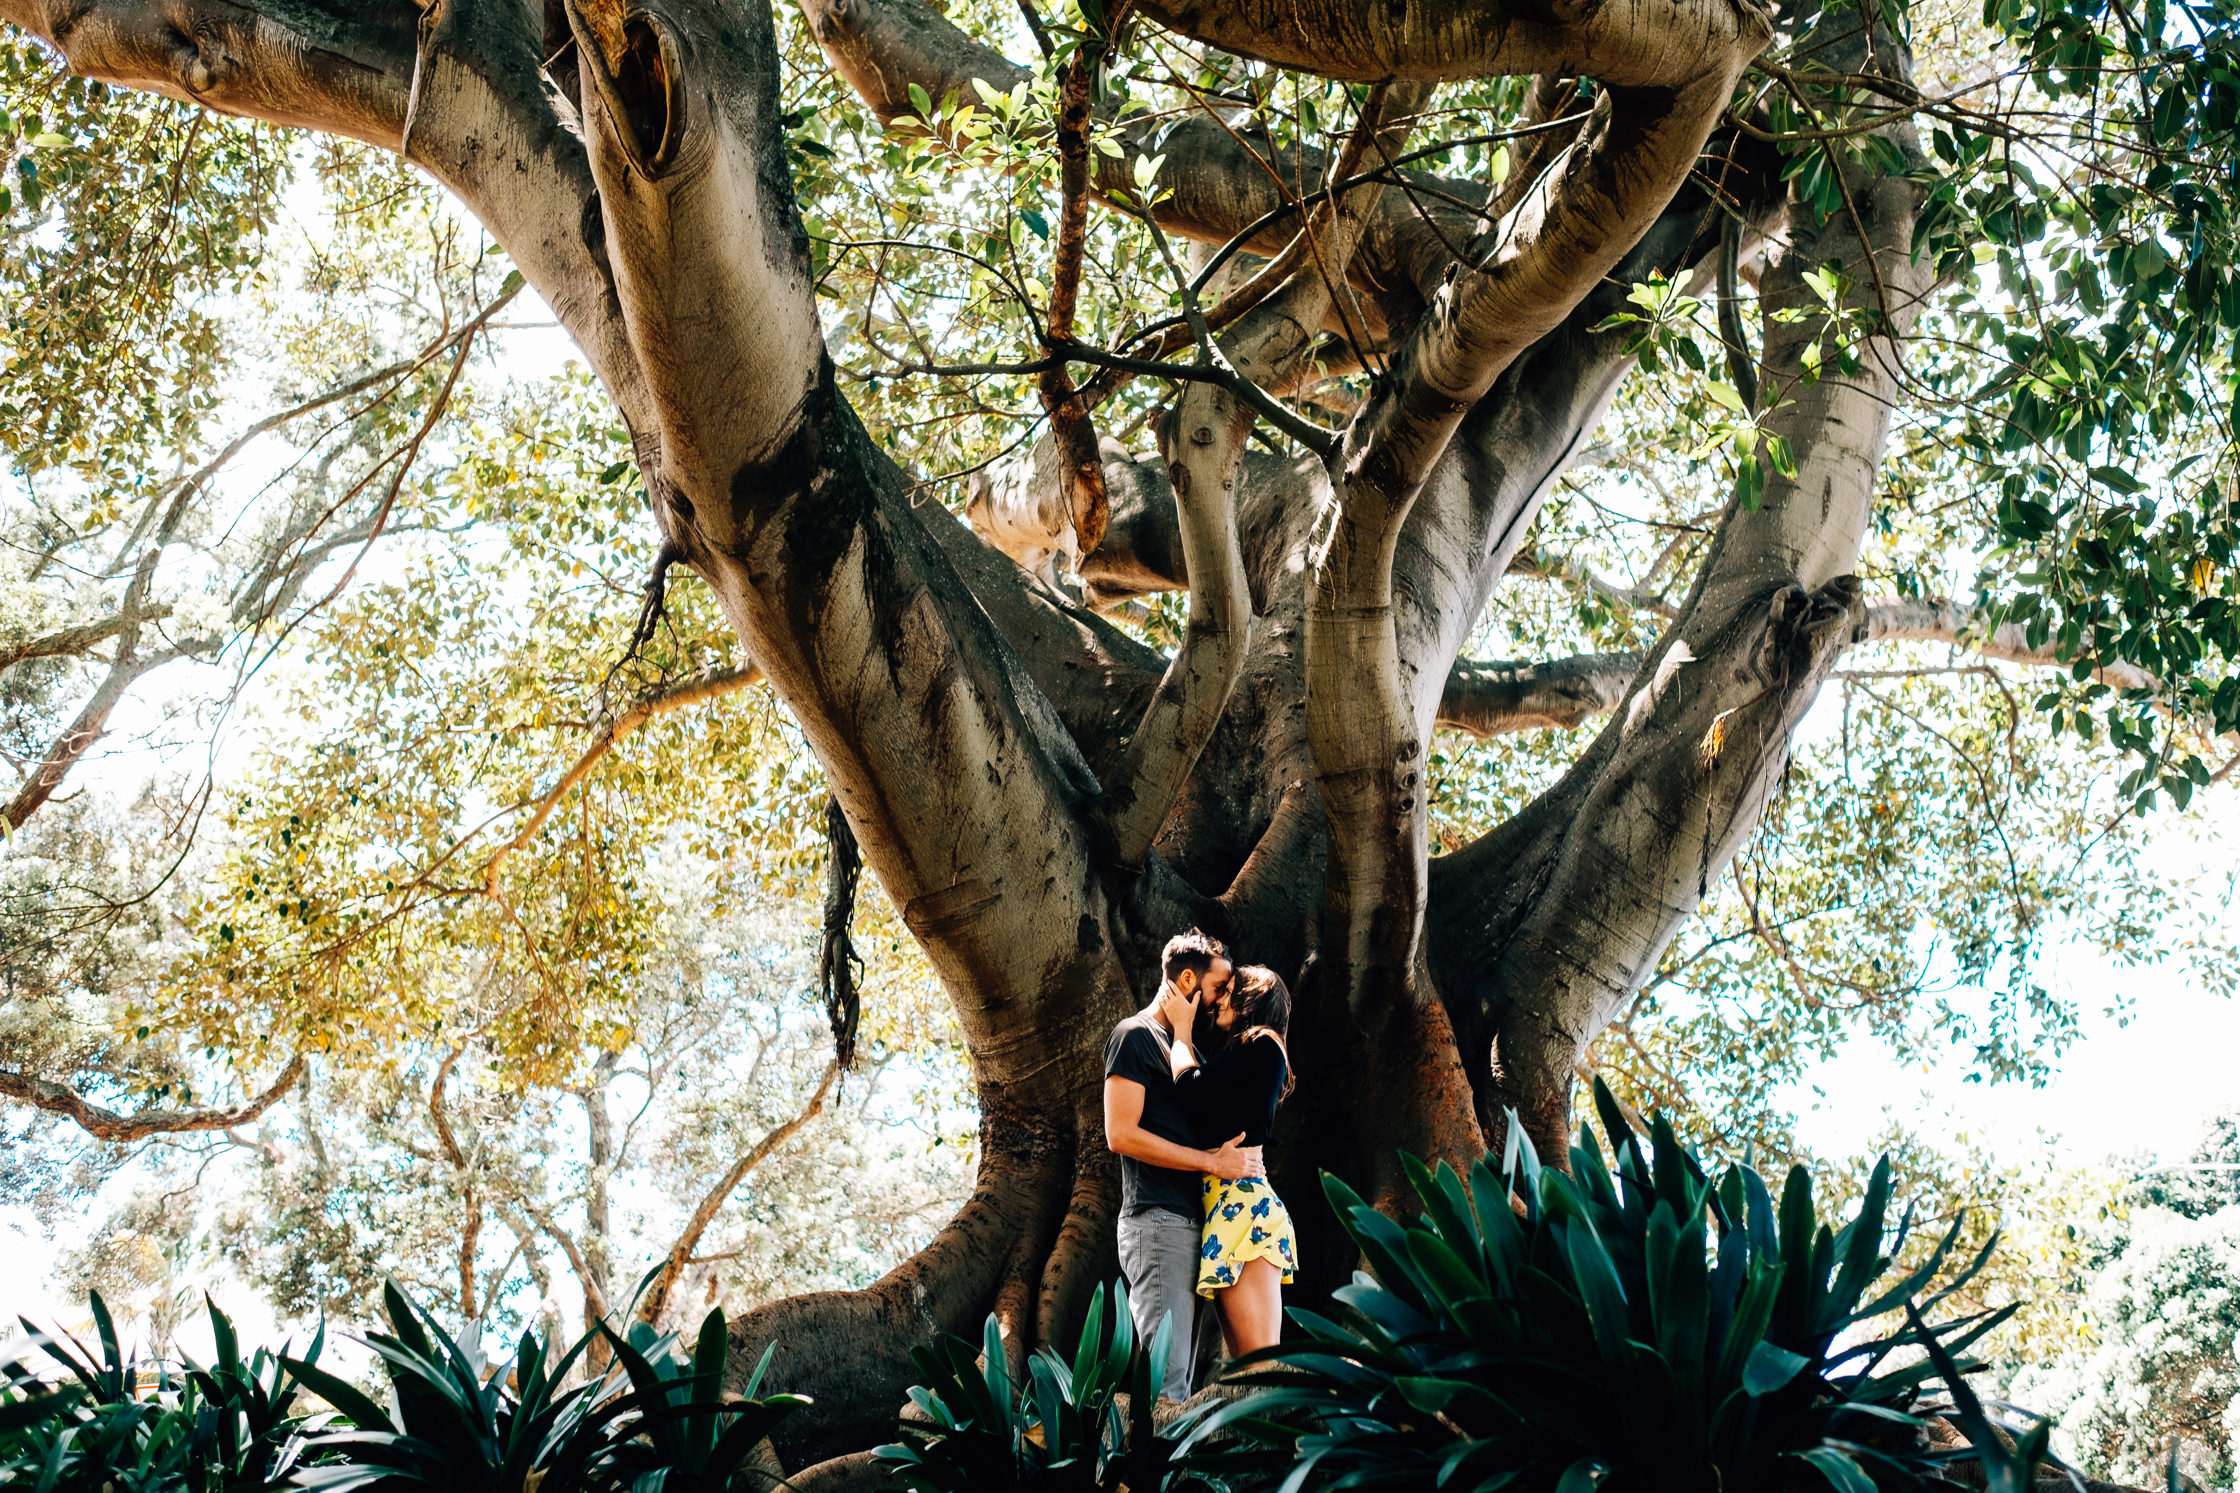 Amy and Daniel - Auckland, New Zealand